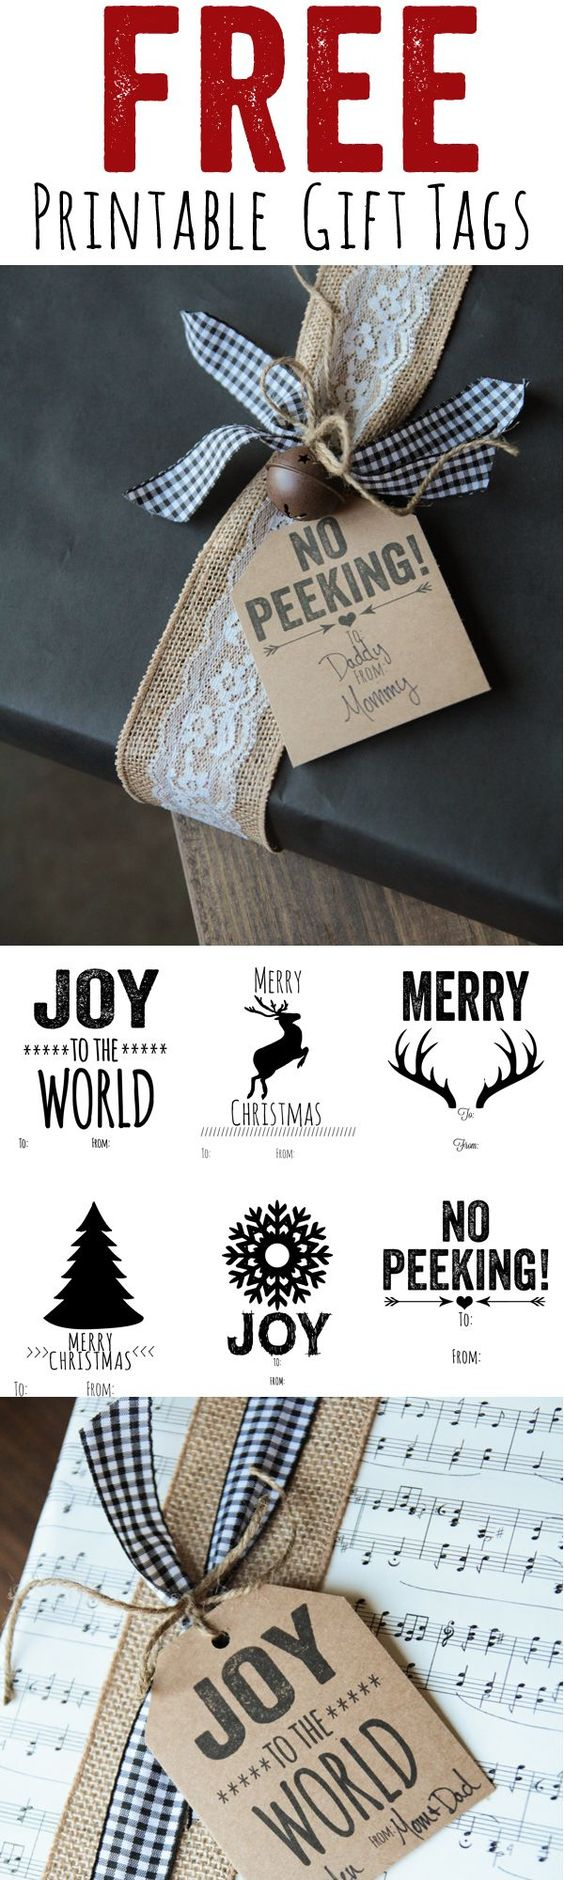 the best christmas printables gift tags holiday greeting cutest ever printable christmas gift tags printable decor the best christmas and holiday printables gift tags gift card holders